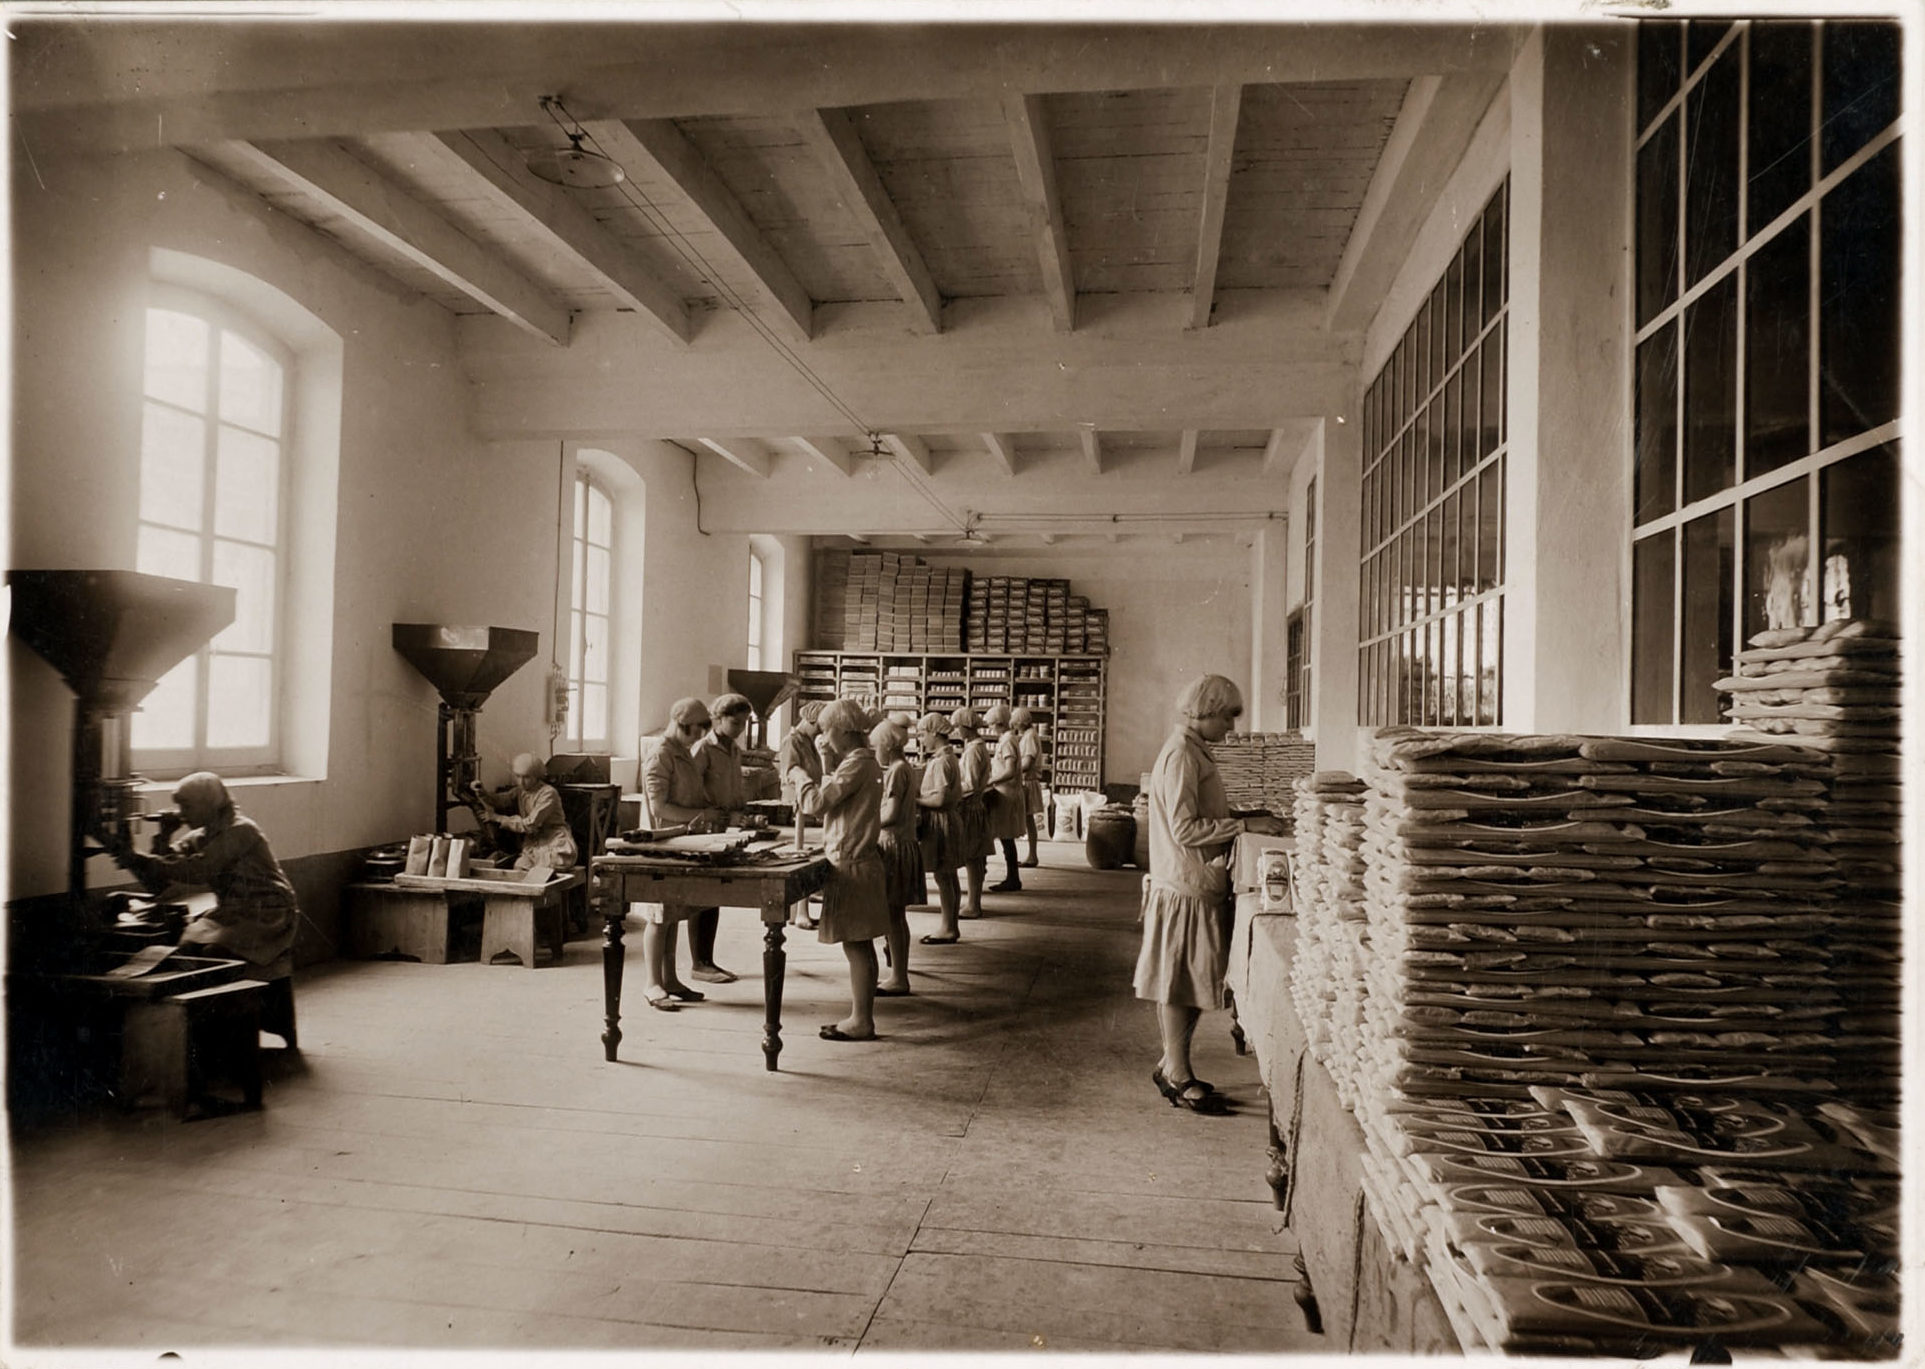 1936 - The packaging area of the Barilla Pasta Plant